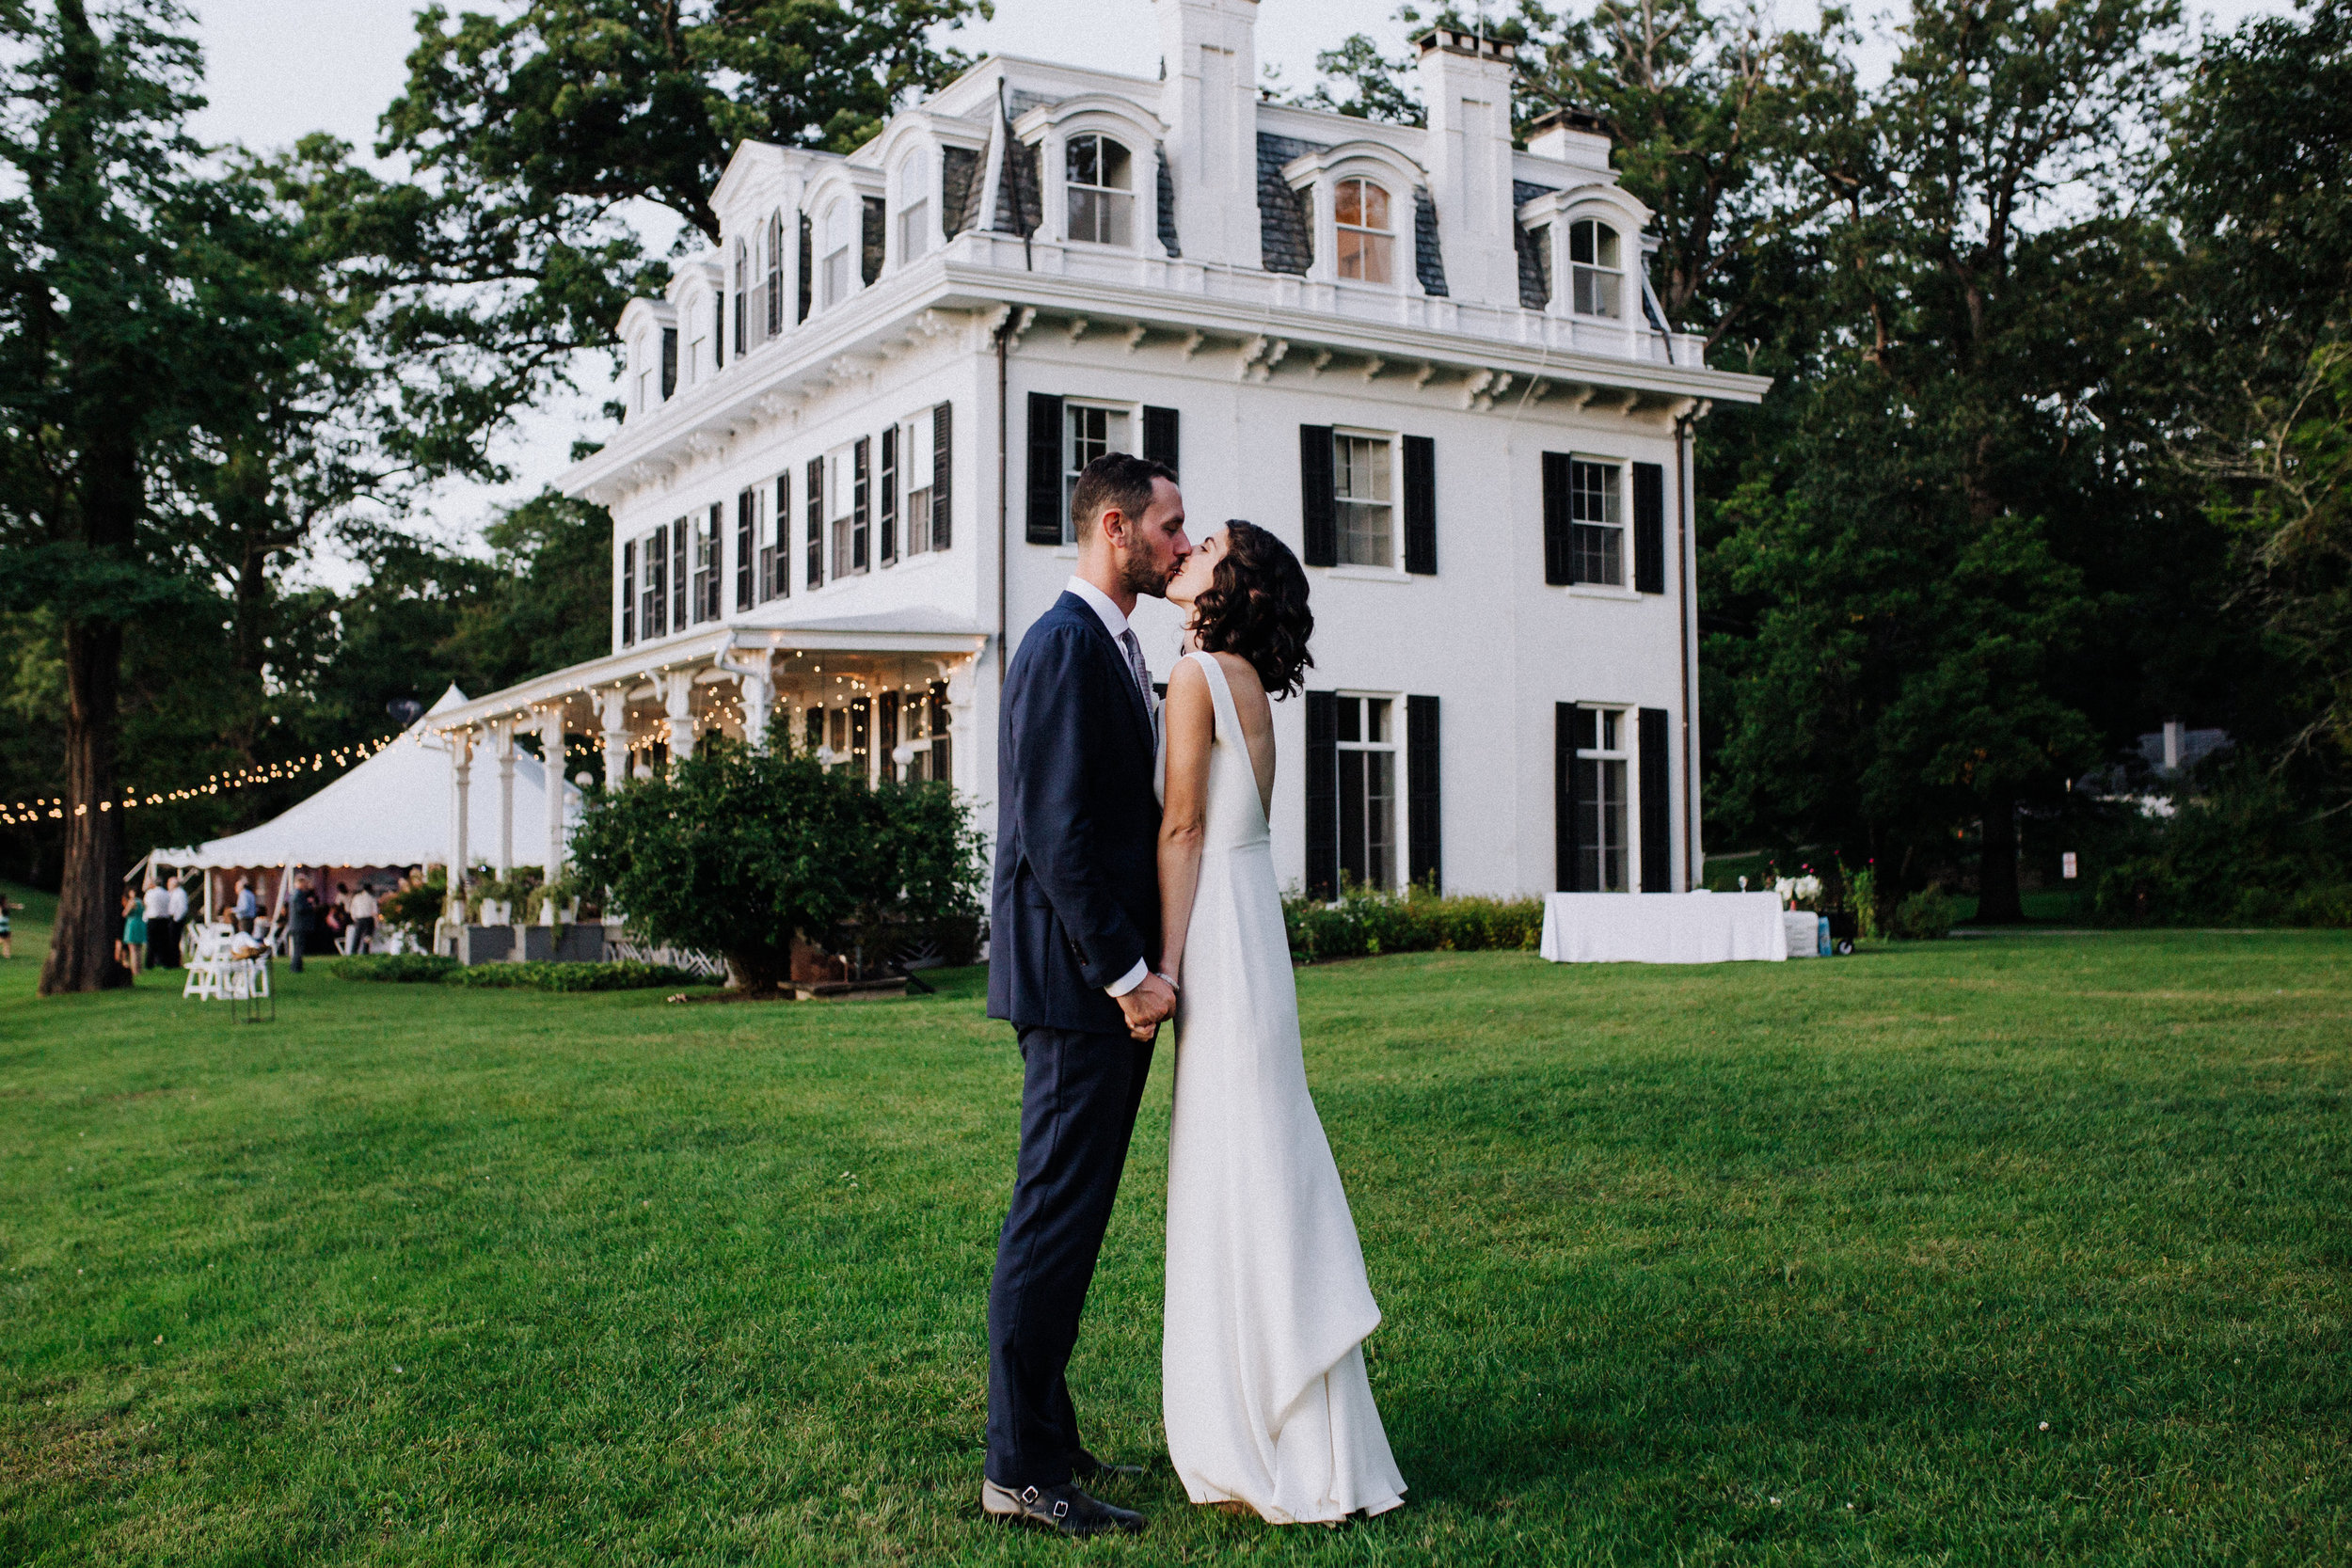 The first time Laura & Zach visited Southwood Estate, they knew almost immediately that it was the perfect choice. The couple was blown away by the gorgeous, 1800s era mansion and sprawling views of the Catskills and Hudson River.With no required vendors or rentals on site, Laura & Zach had full creative control of their event. This freedom made it possible to personalize even the tiniest of details. After spending time living in Mexico, Laura developed a slight obsession with the country.She loved being able to work with a local Mexican restaurant to serve margaritas, tacos, even churros during cocktail hour! Everything about the day felt like a true expression of the couple and their community.